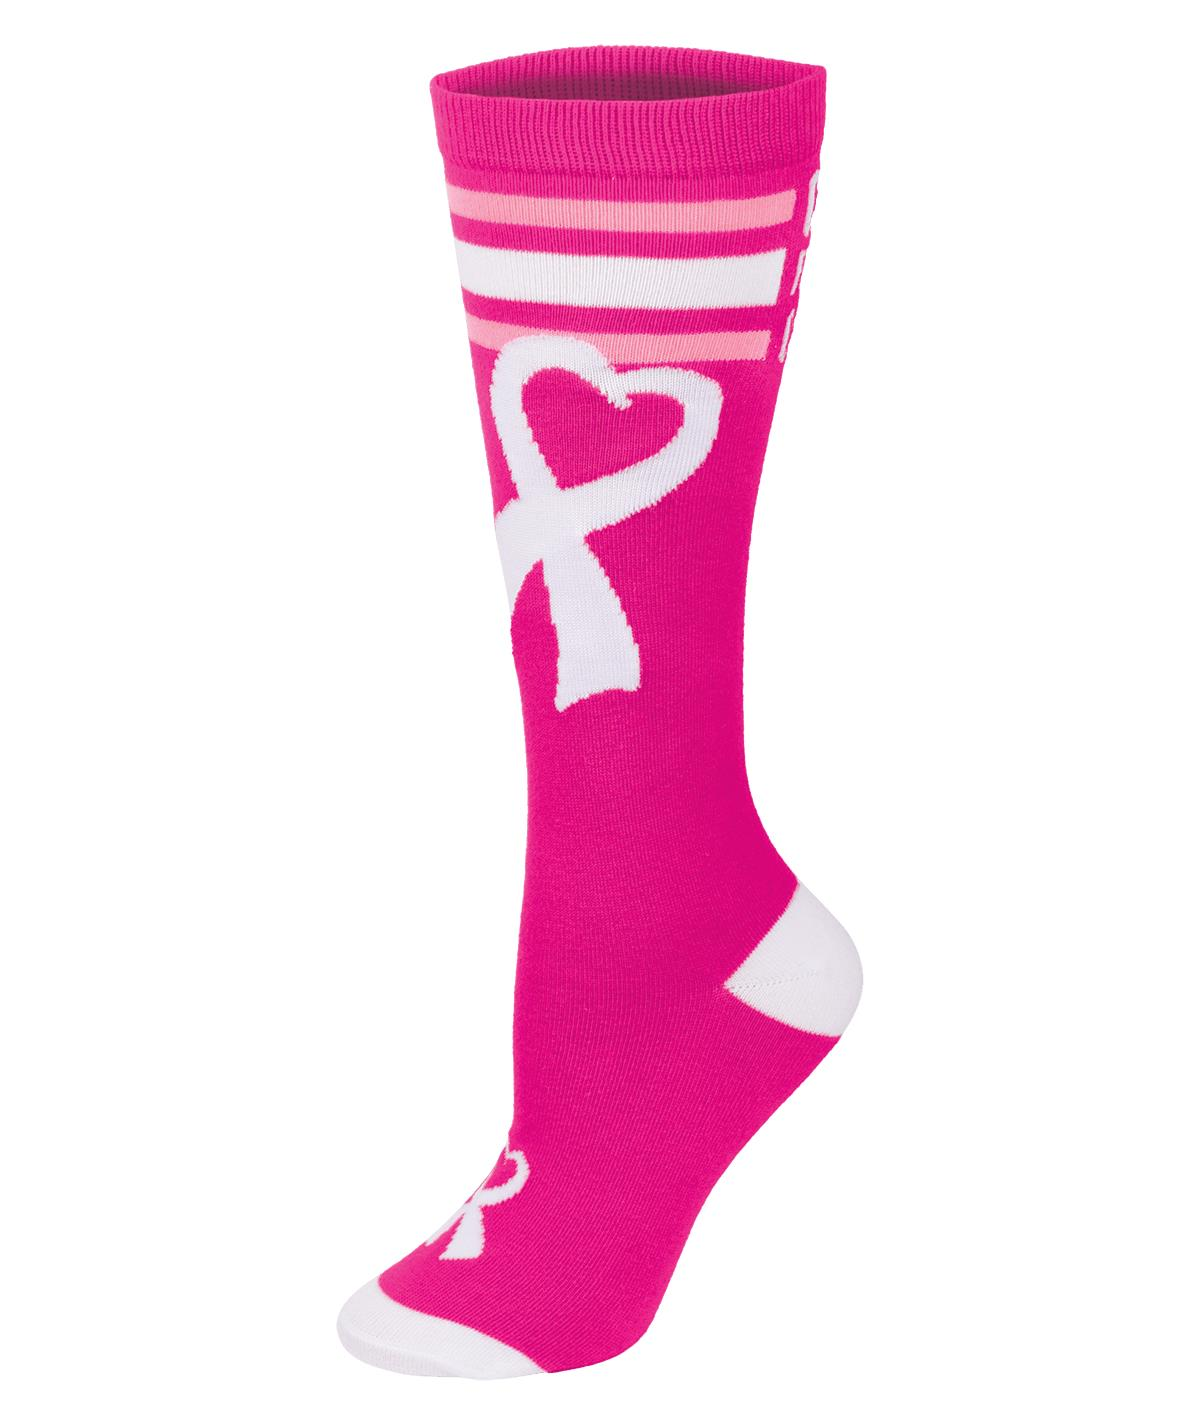 Chasse Cheer for the Cause Ribbon Knee-High Sock